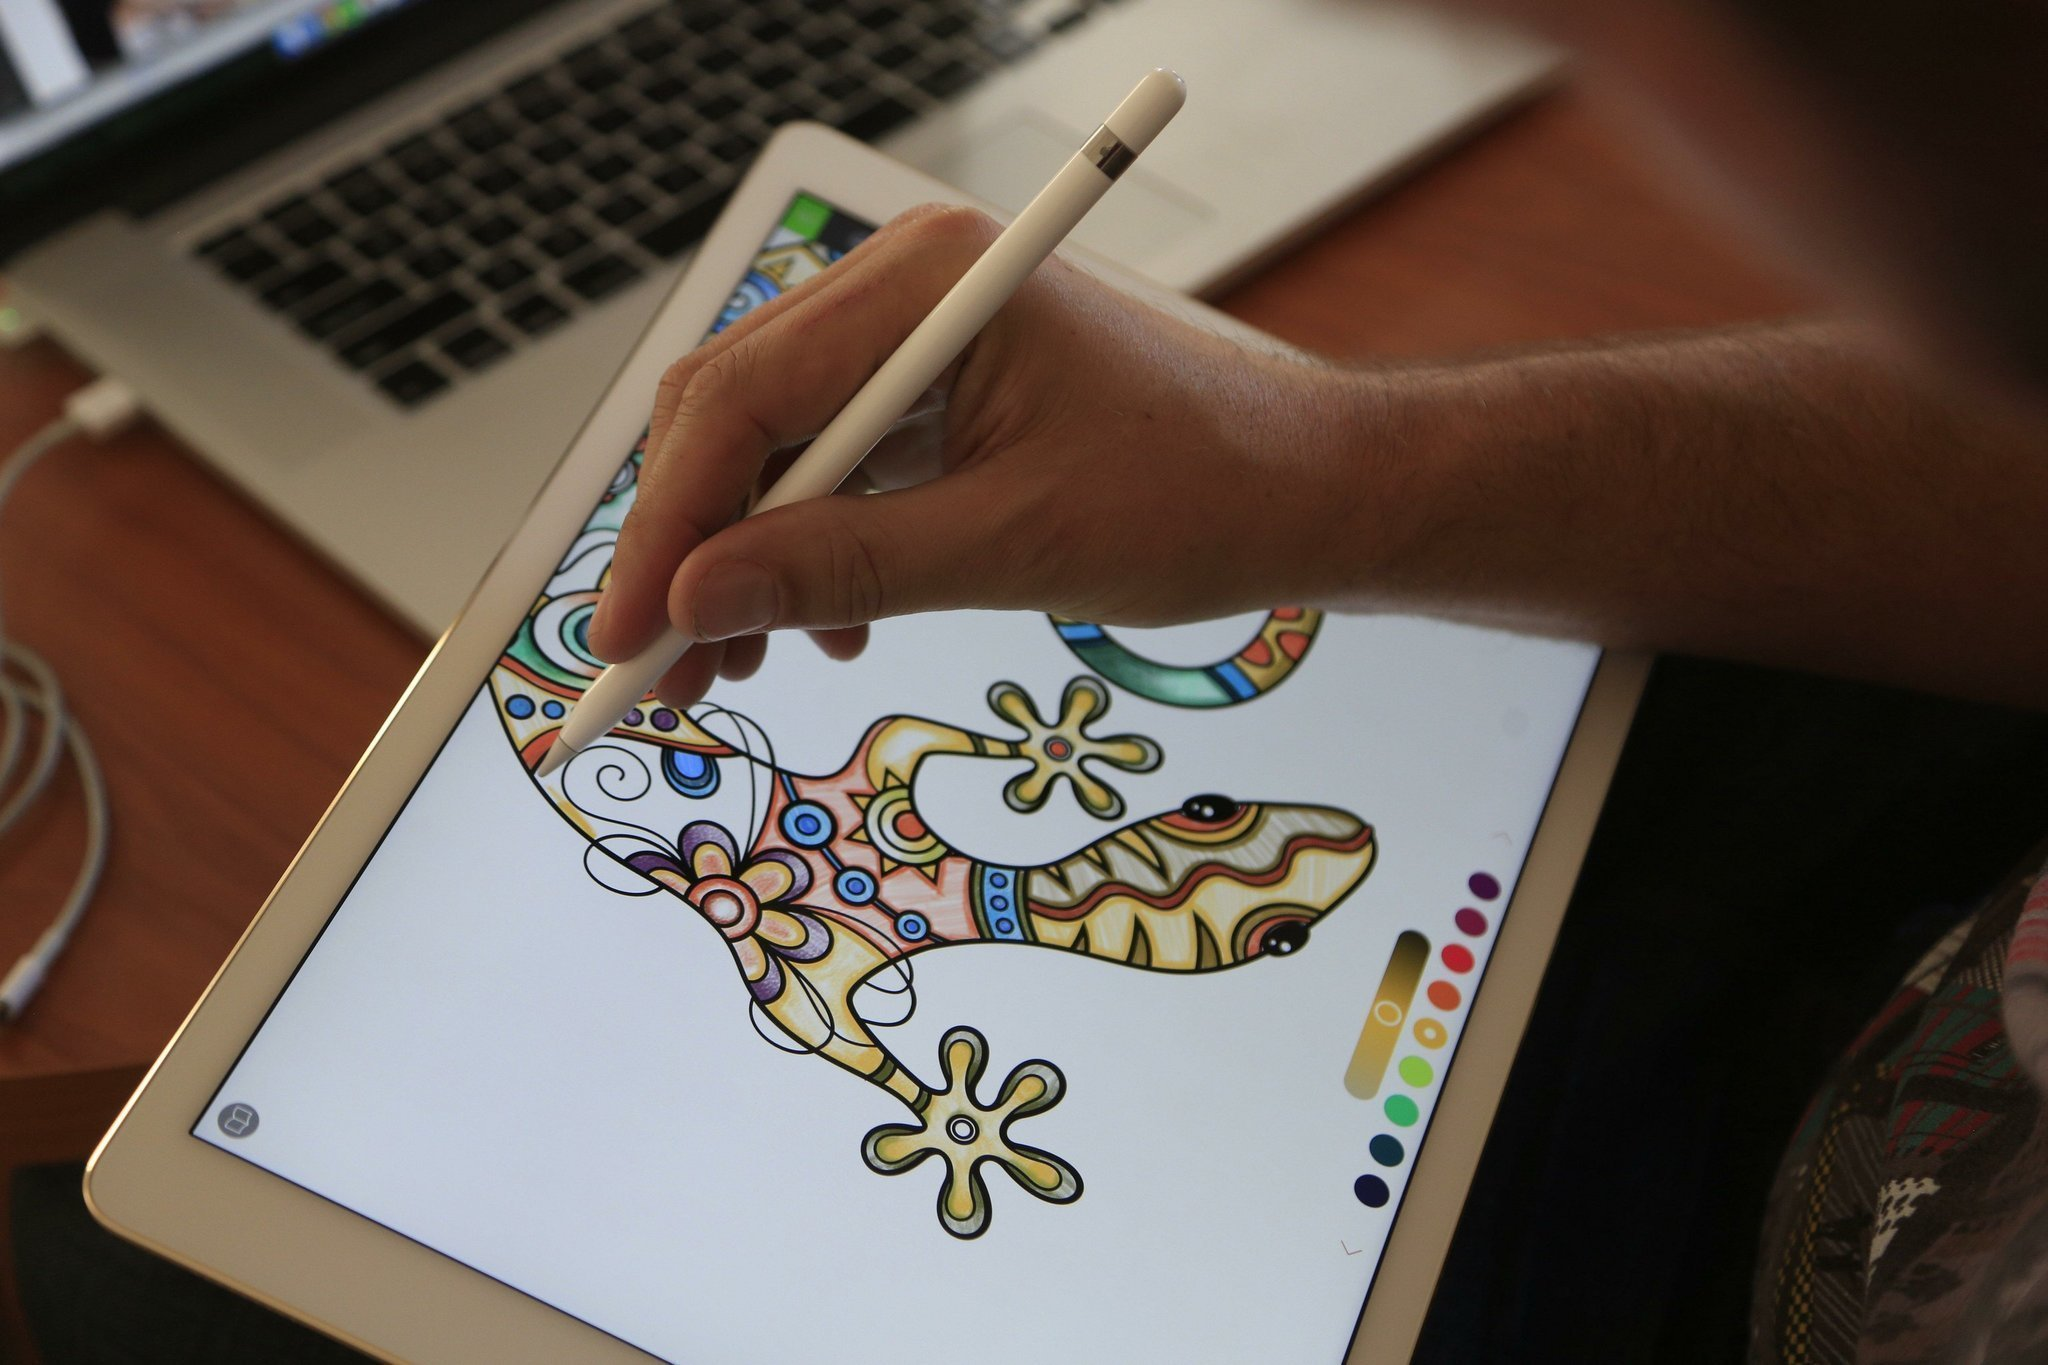 Pigment Is A Lifelike Adult Coloring Book App For IOS